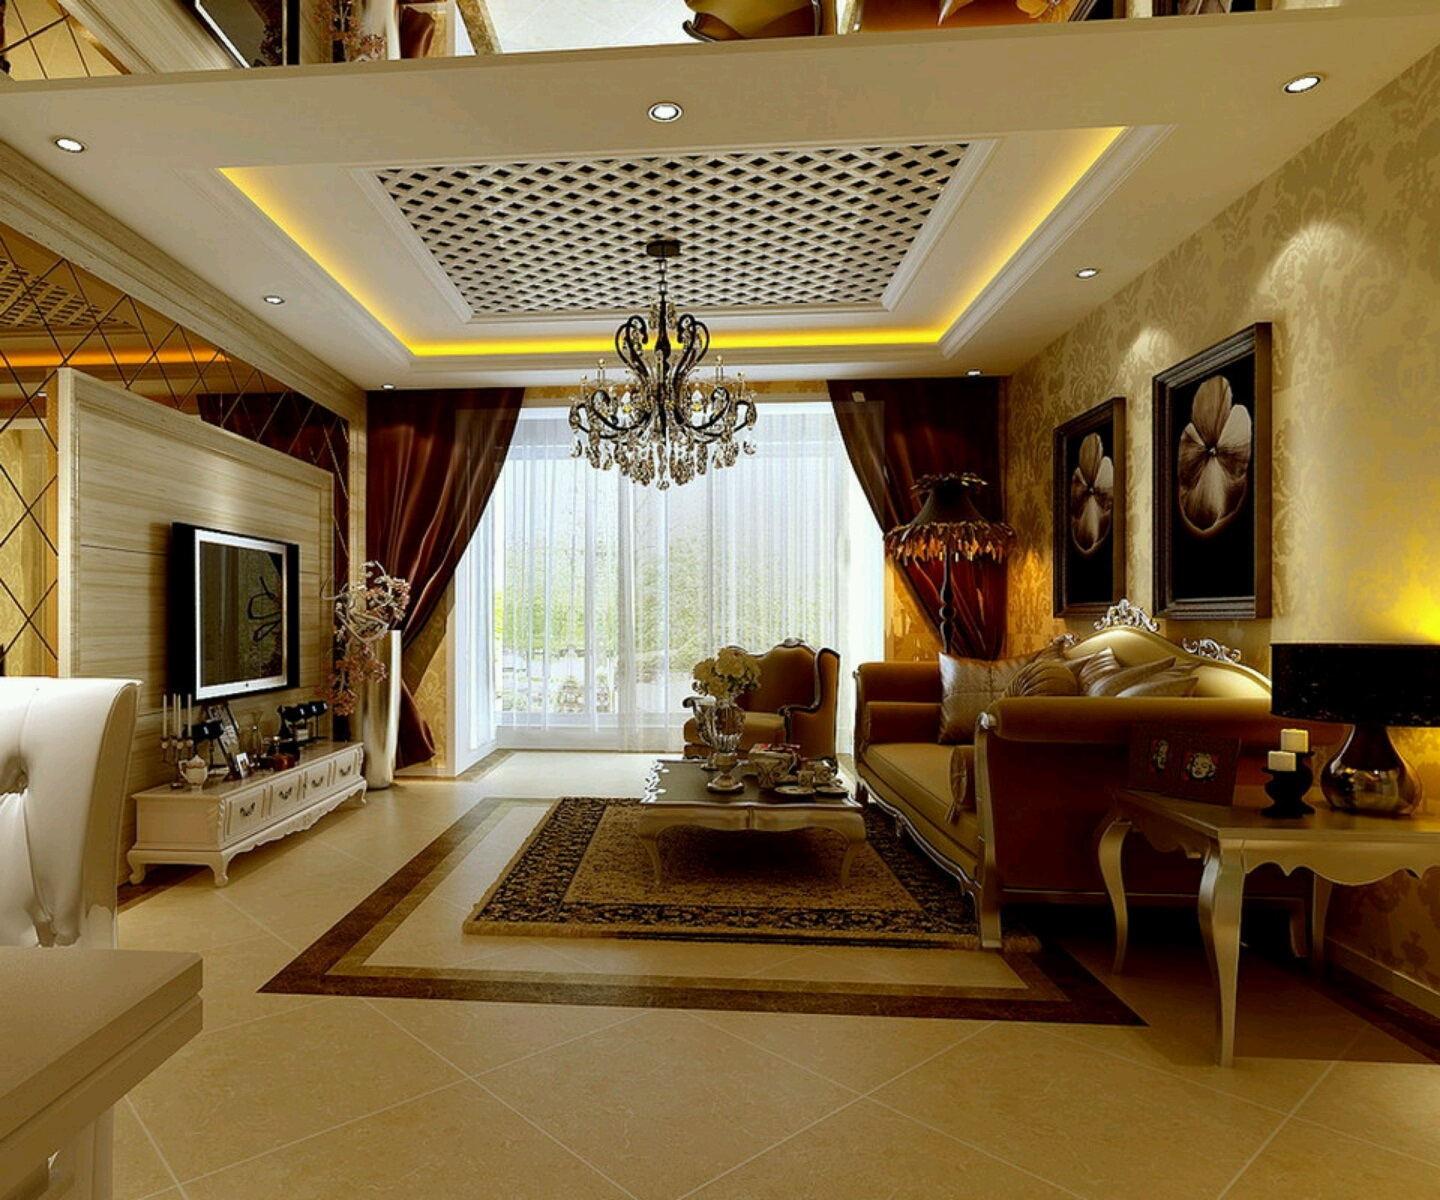 Cozy Luxury Homes Interior Gallery: Ver Fotos De Casas Bonitas. Escoja Y Vote Por Sus Fotos De